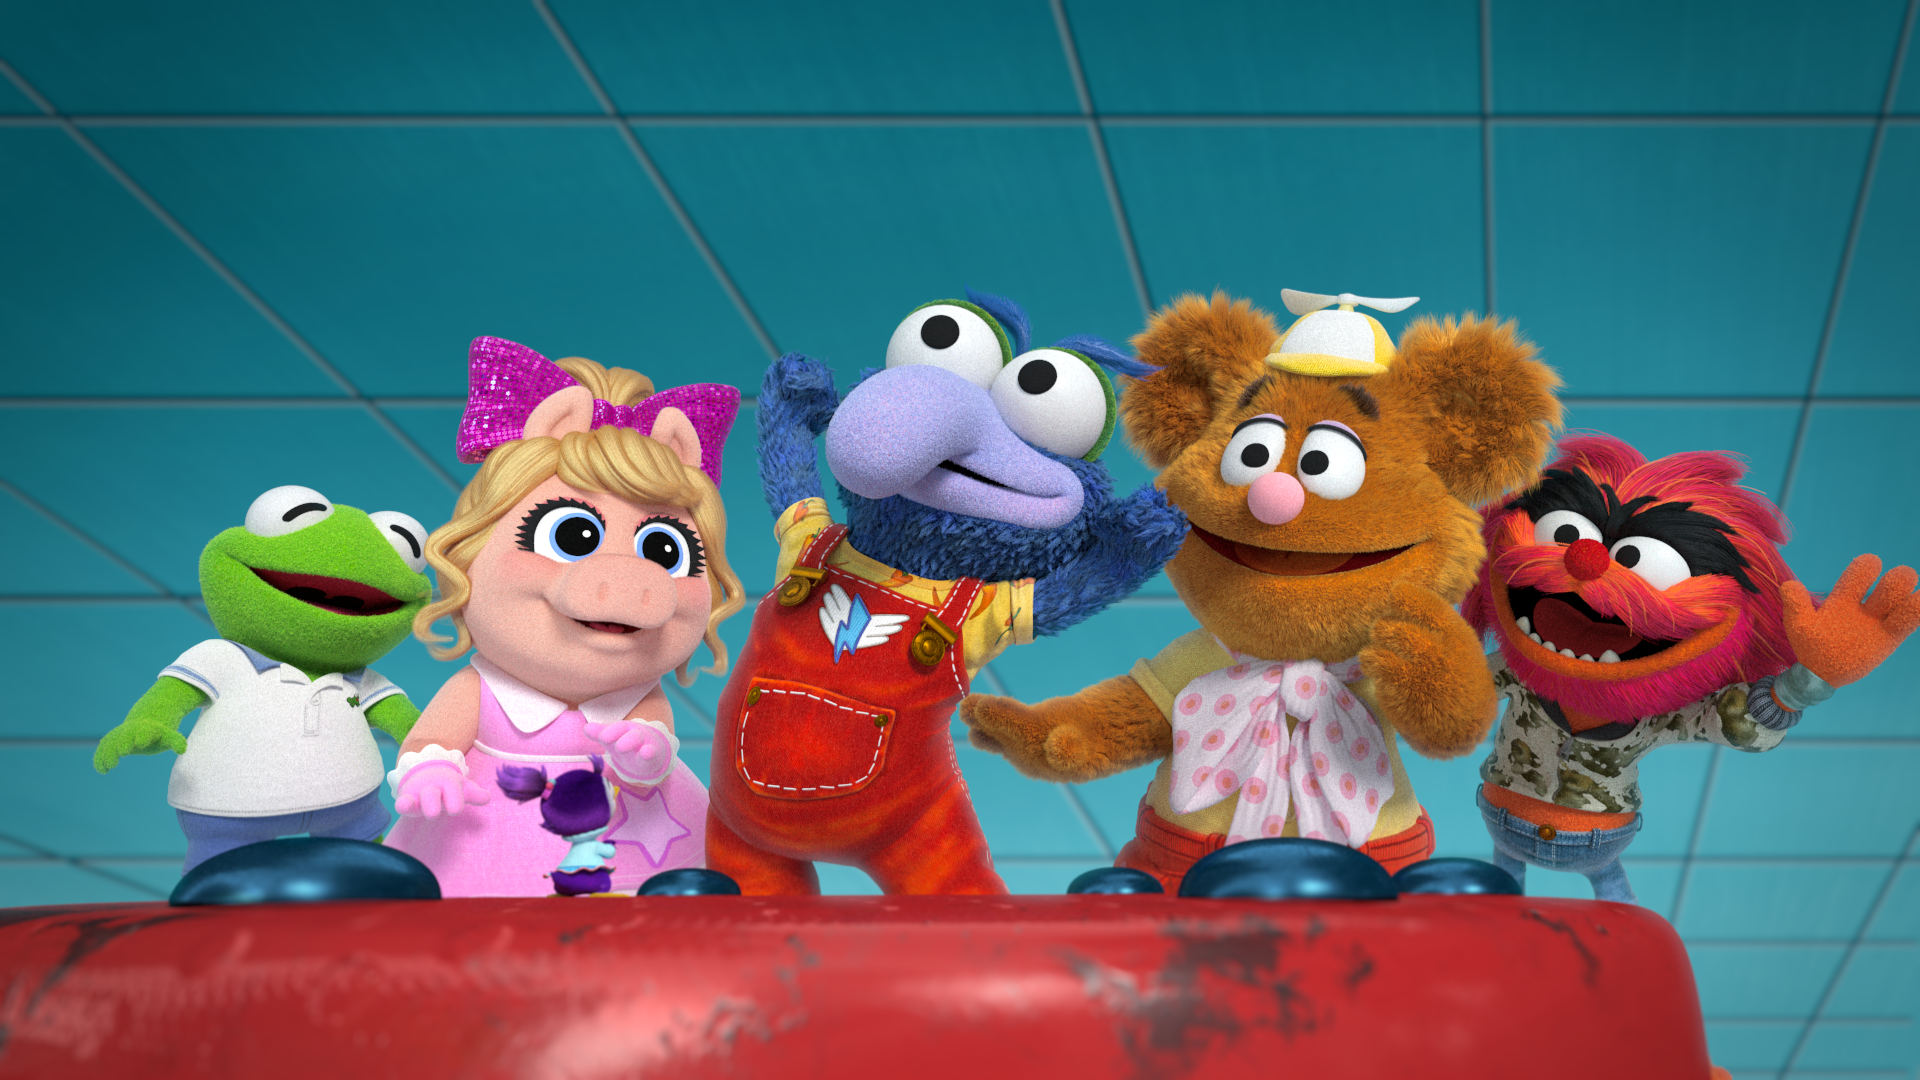 Snowball_MuppetBabies_02.png